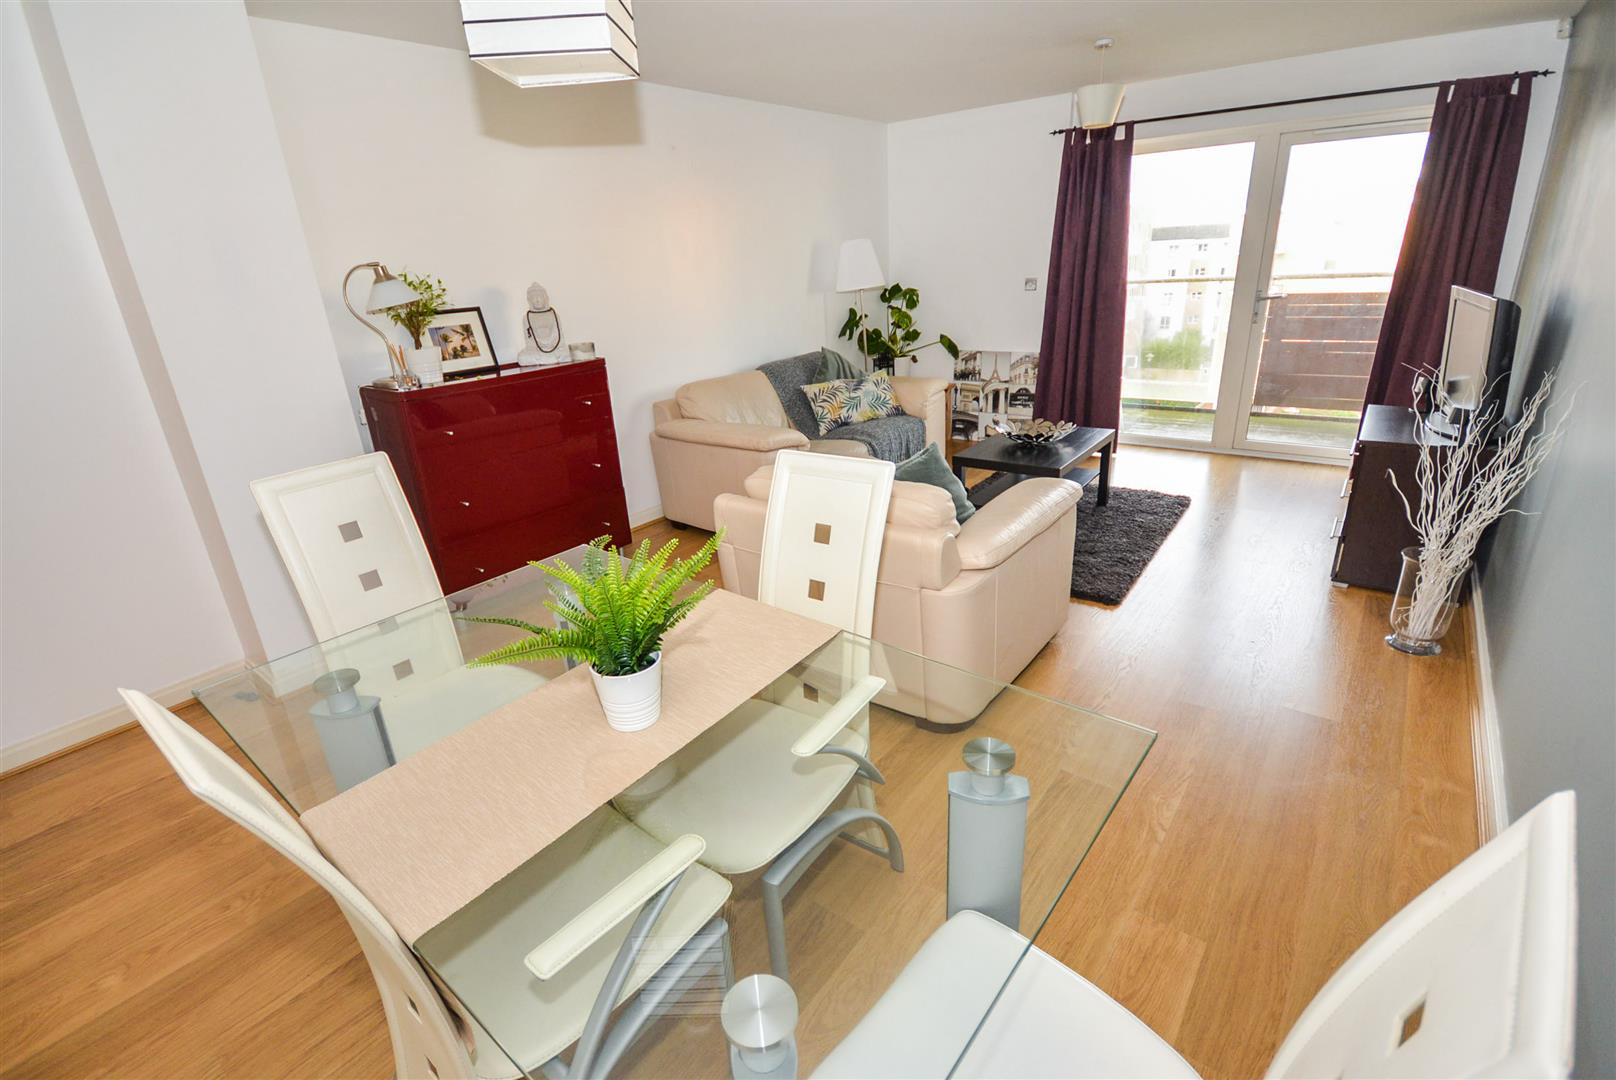 1 bed apartment for sale in Chandlery Way, Cardiff 4